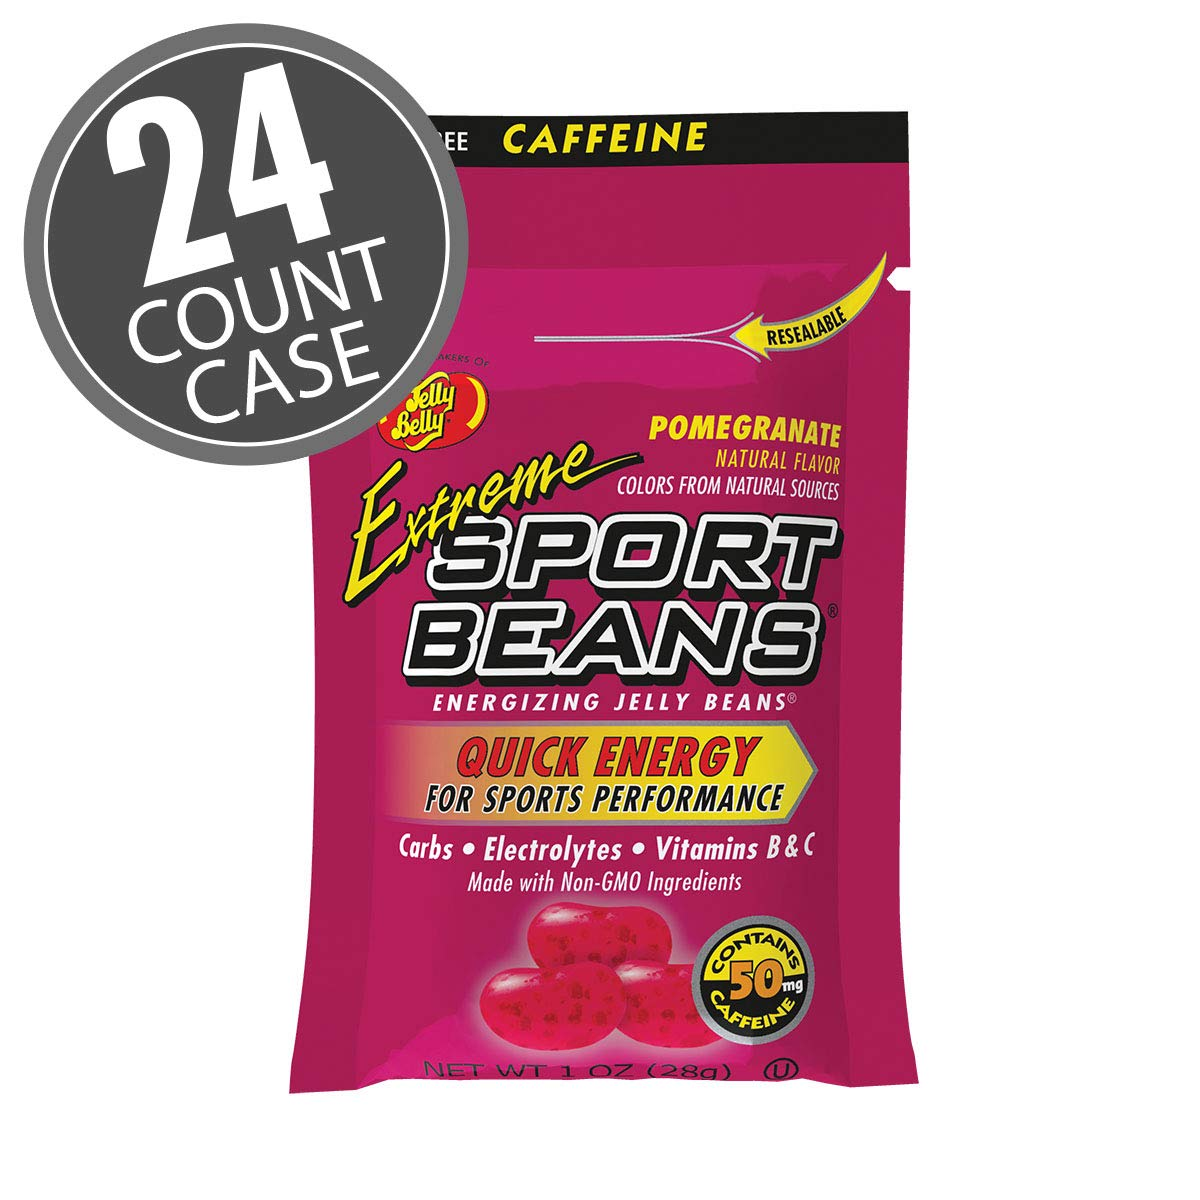 Jelly Belly Extreme Sport Beans - Caffeinated Energizing Jelly Beans - Pomegranate Flavor, 24 x 1 Ounce Bags by Jelly Belly